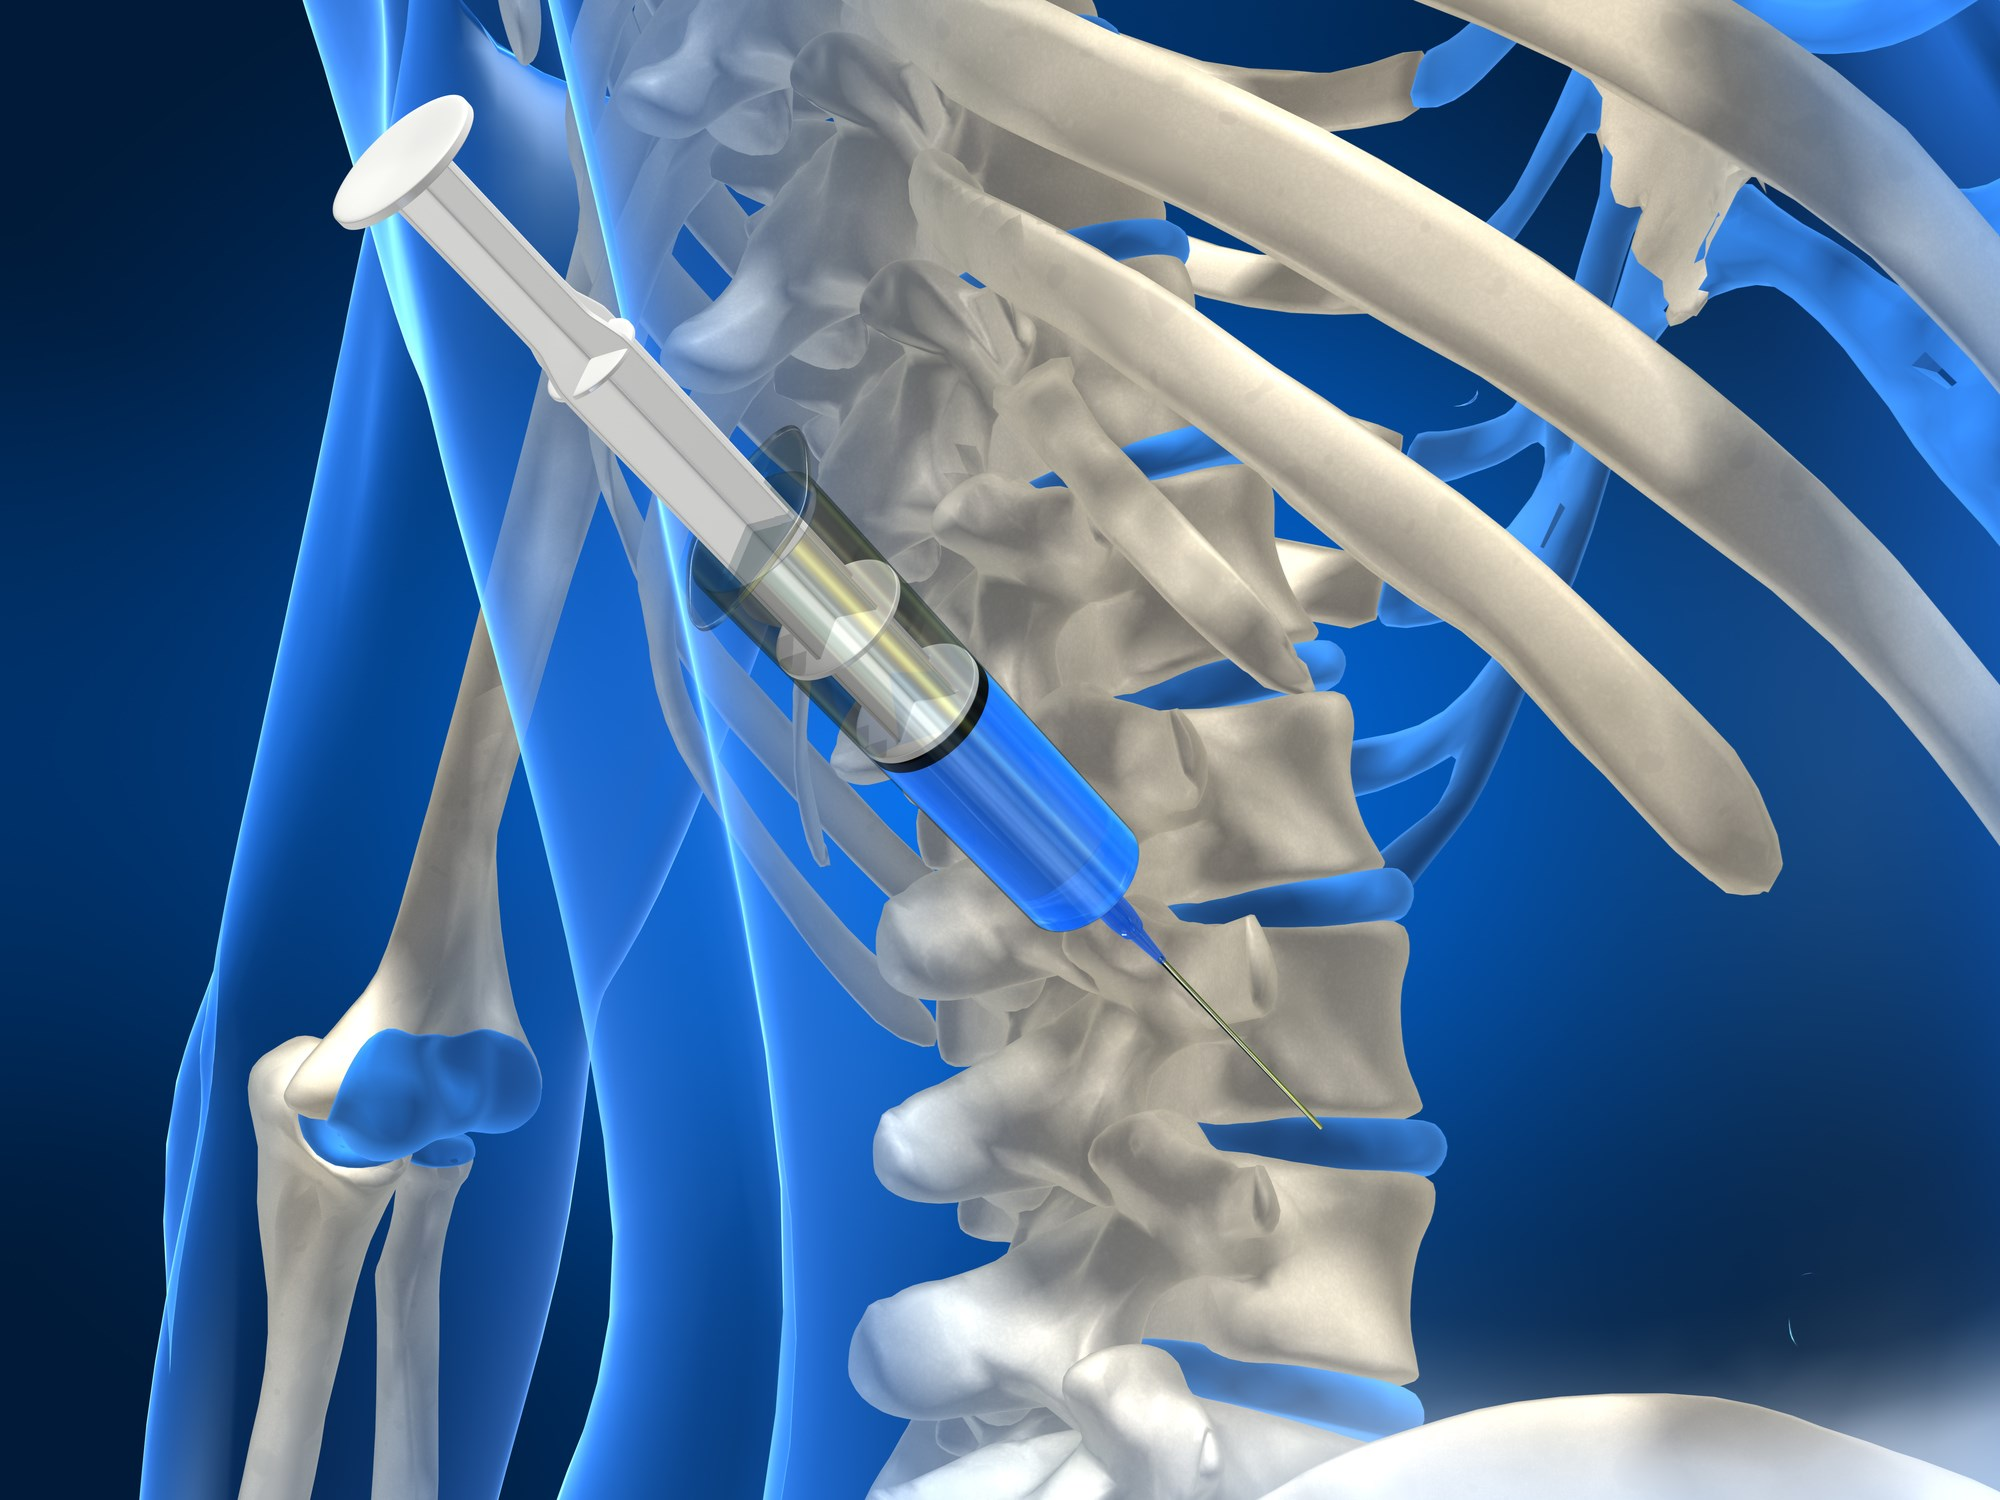 Intradiscal Steroid Injection Provides Short-Term Relief From Low Back Pain